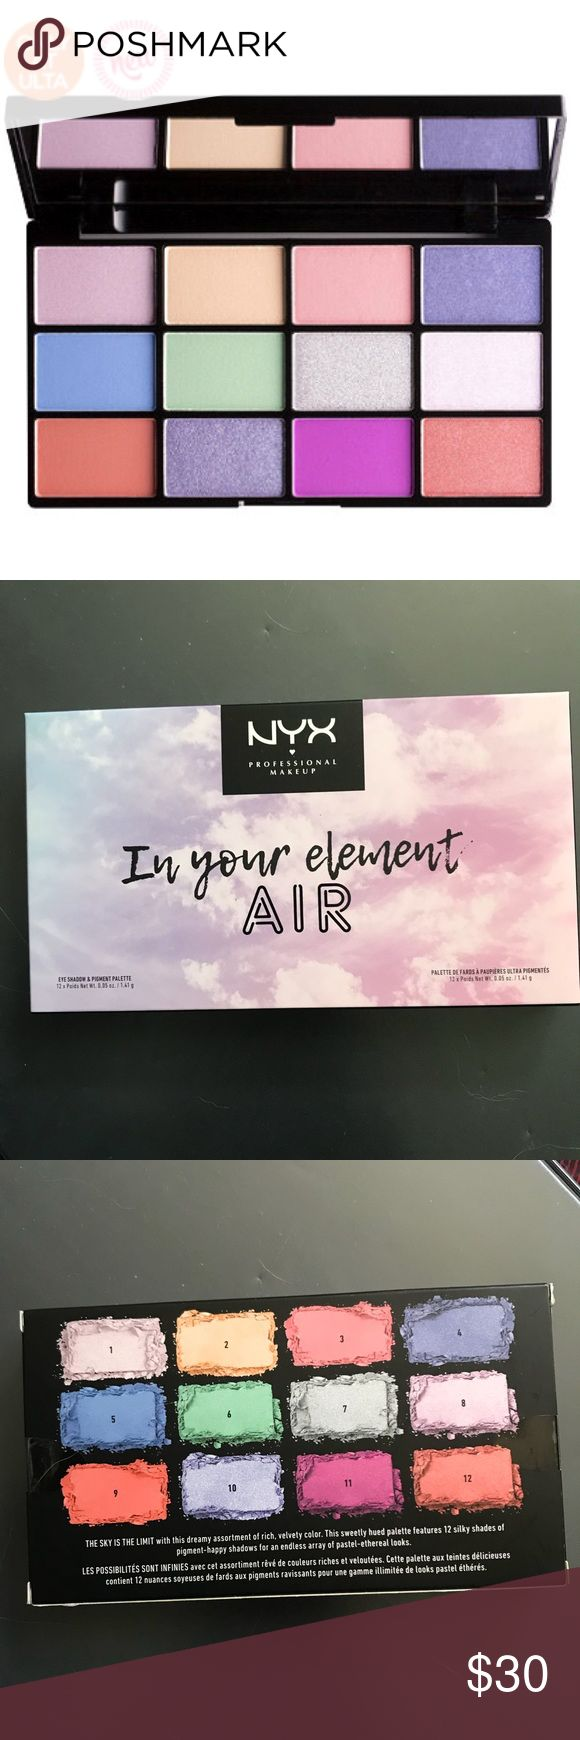 🆕 NYX In Your Element AIR Palette NEW!! Brand new in box. Retails for $30 In Your Element Air Shadow Palette is a limited-edition palette featuring 12 air-inspired tones of ultra-velvety eyeshadow pigment, plus a generously sized mirror. The sky is the limit with this dreamy assortment of rich, velvety color. This sweetly hued palette features silky shades of rich, blendable eyeshadow and pigment for an endless array of pastel-ethereal looks. color combinations is inspired by the earth's…